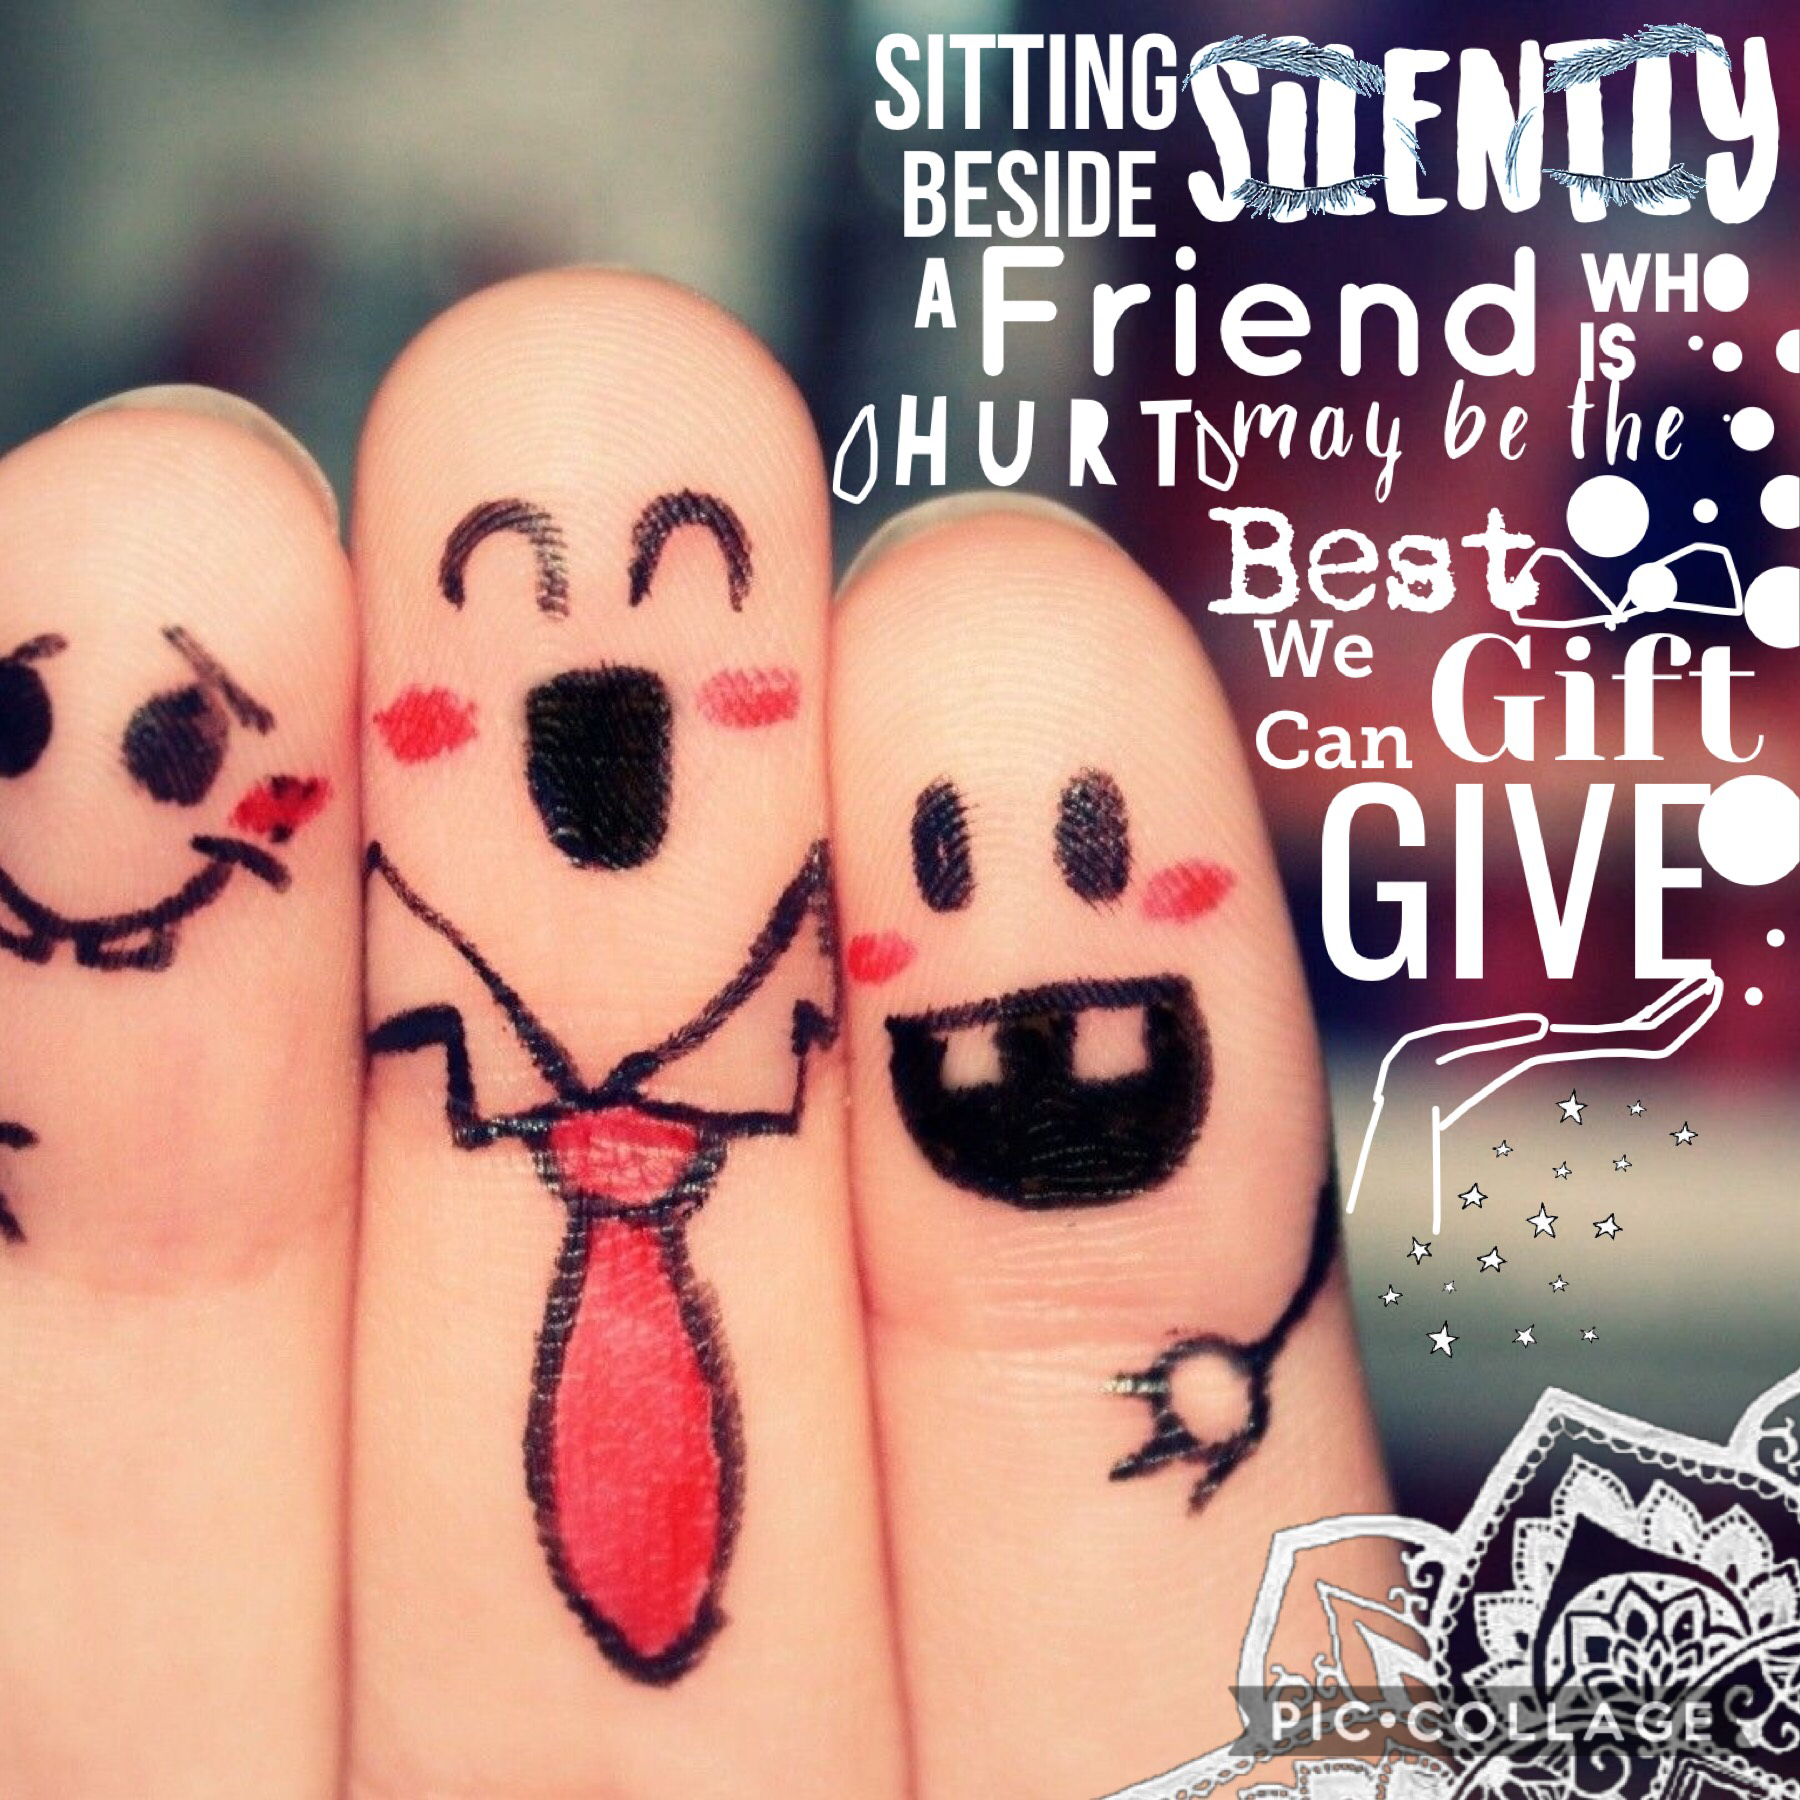 True friends don't betray you. They help you to get success.